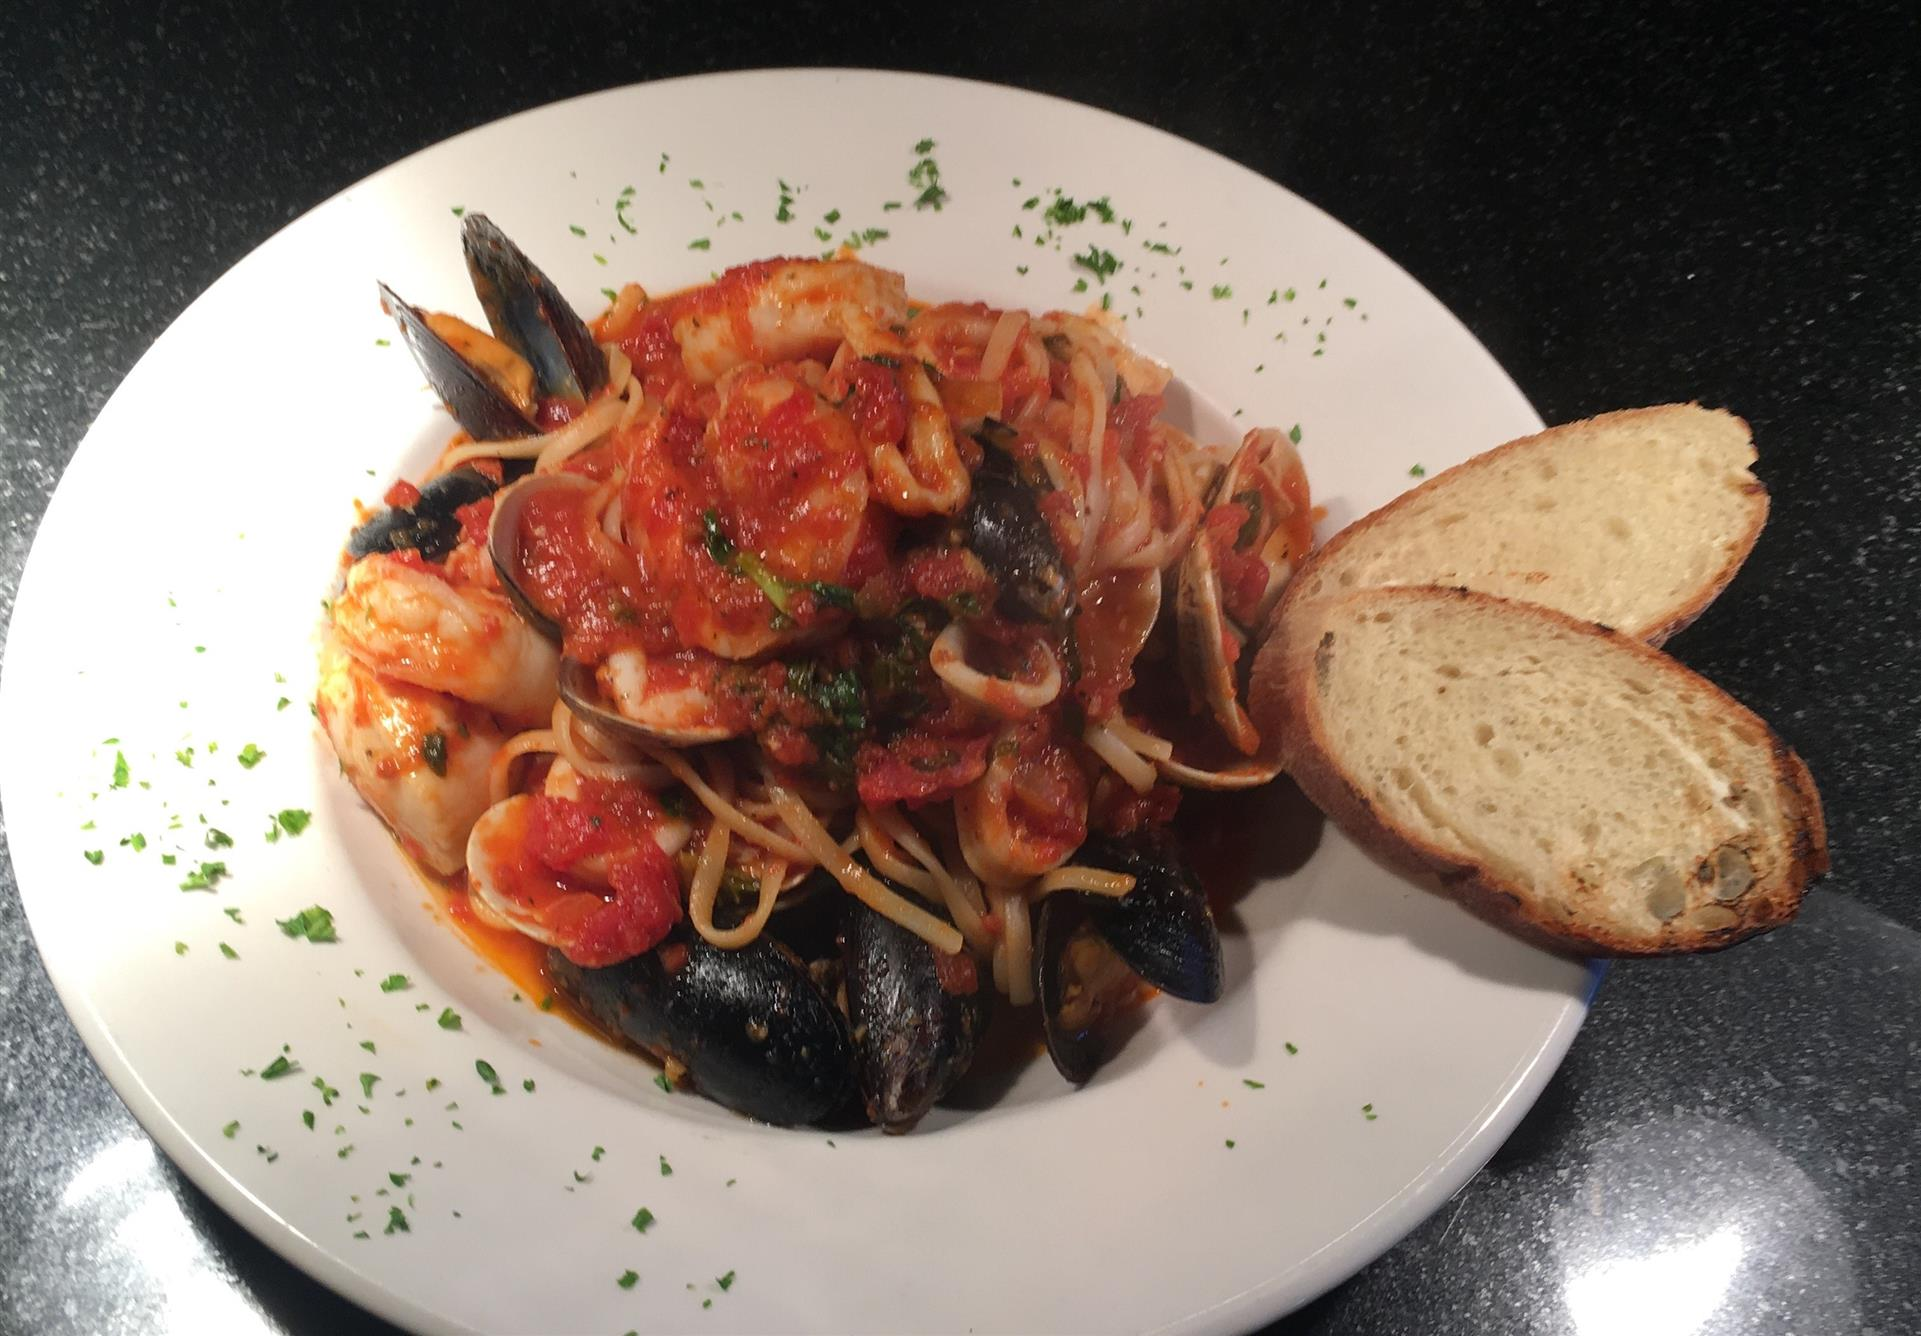 Seafood Cioppino. Scallops, Shrimp, Clams, Mussels and Calamari topssed with linguine in marinara sauce.